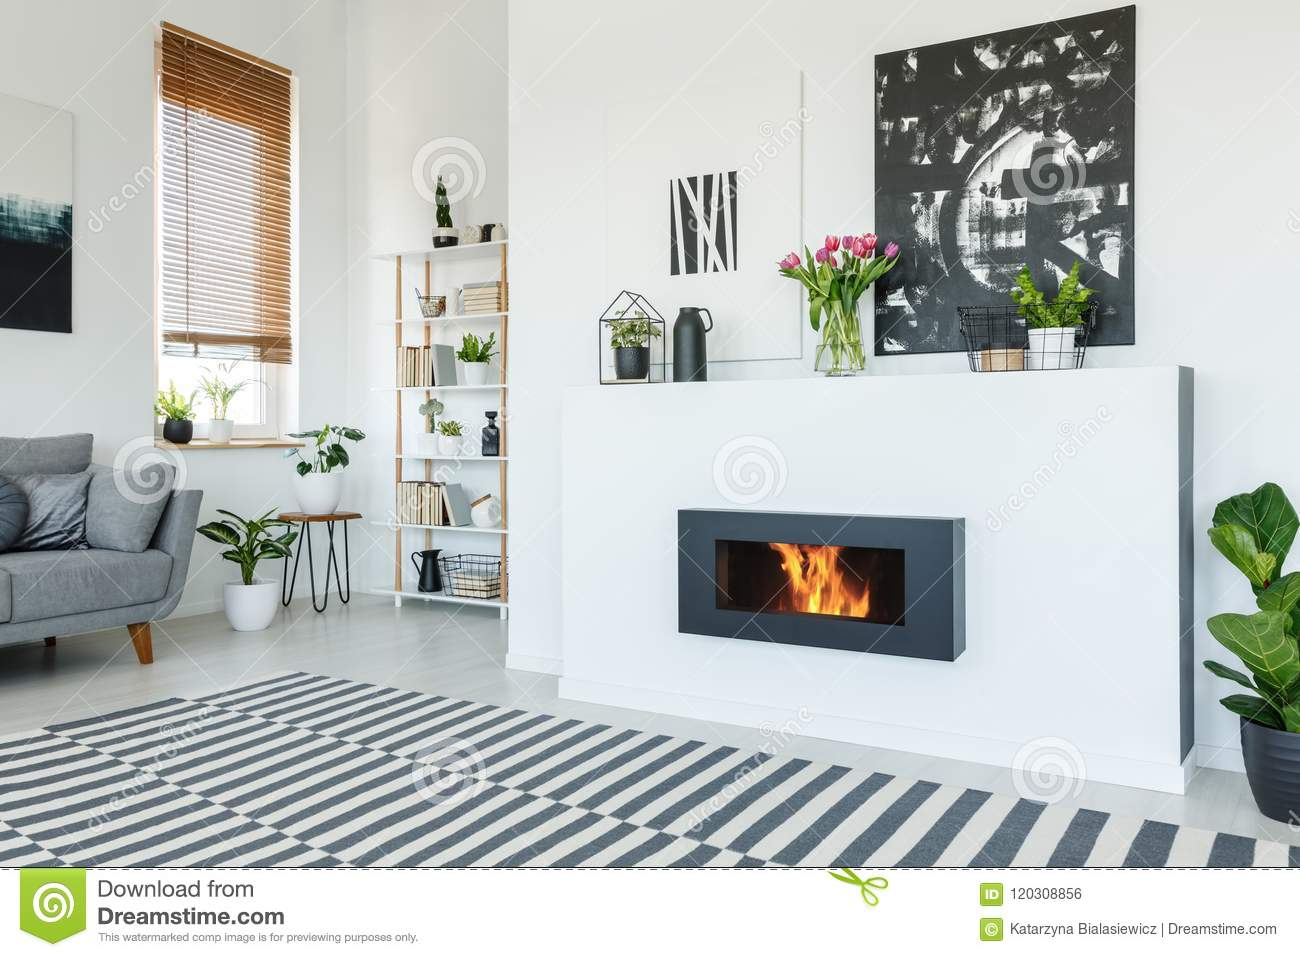 Modern Interieur Wit : Black painting above fireplace in white living room interior wit